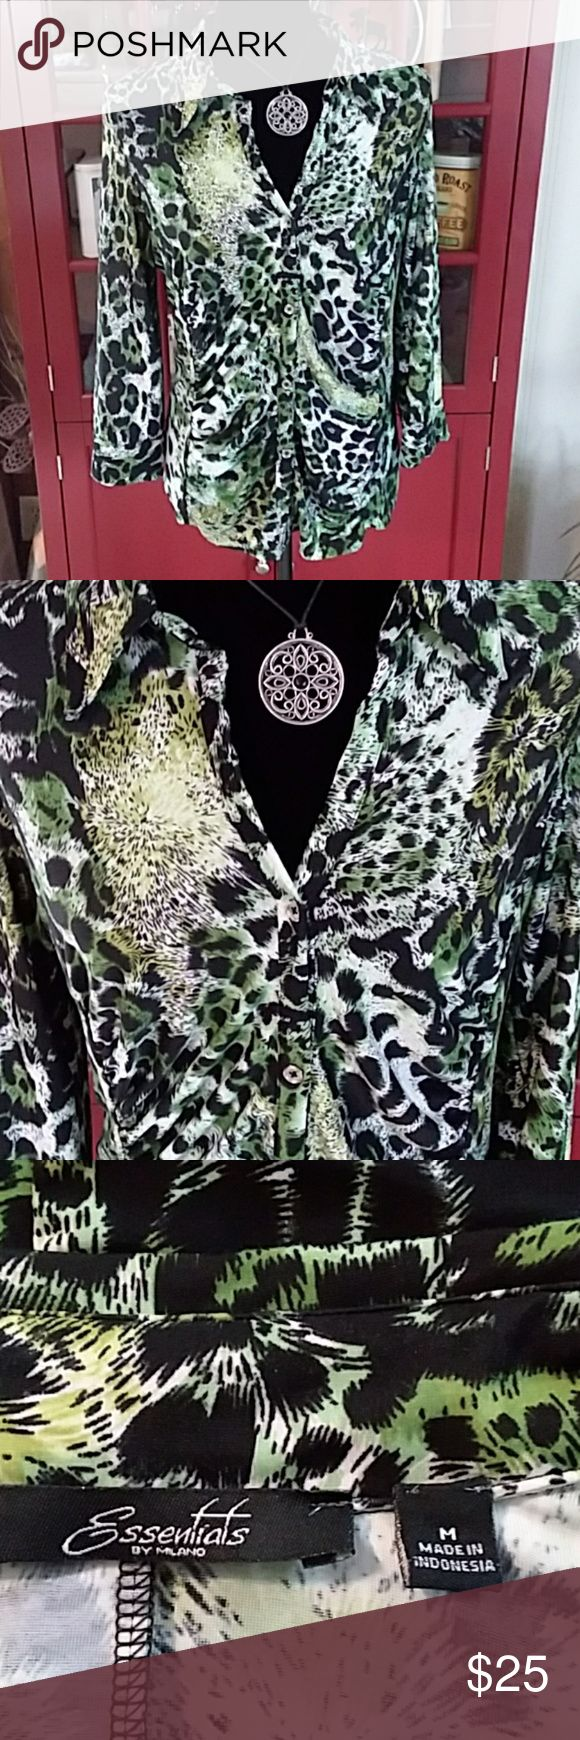 Green & Black Leopard Print Shirt This gorgeous shirt is soft, silky & flattering with its puckered front & 3/4 sleeves. It's one of my favorite pieces! Looks great with a black skirt! Essentials Tops Blouses